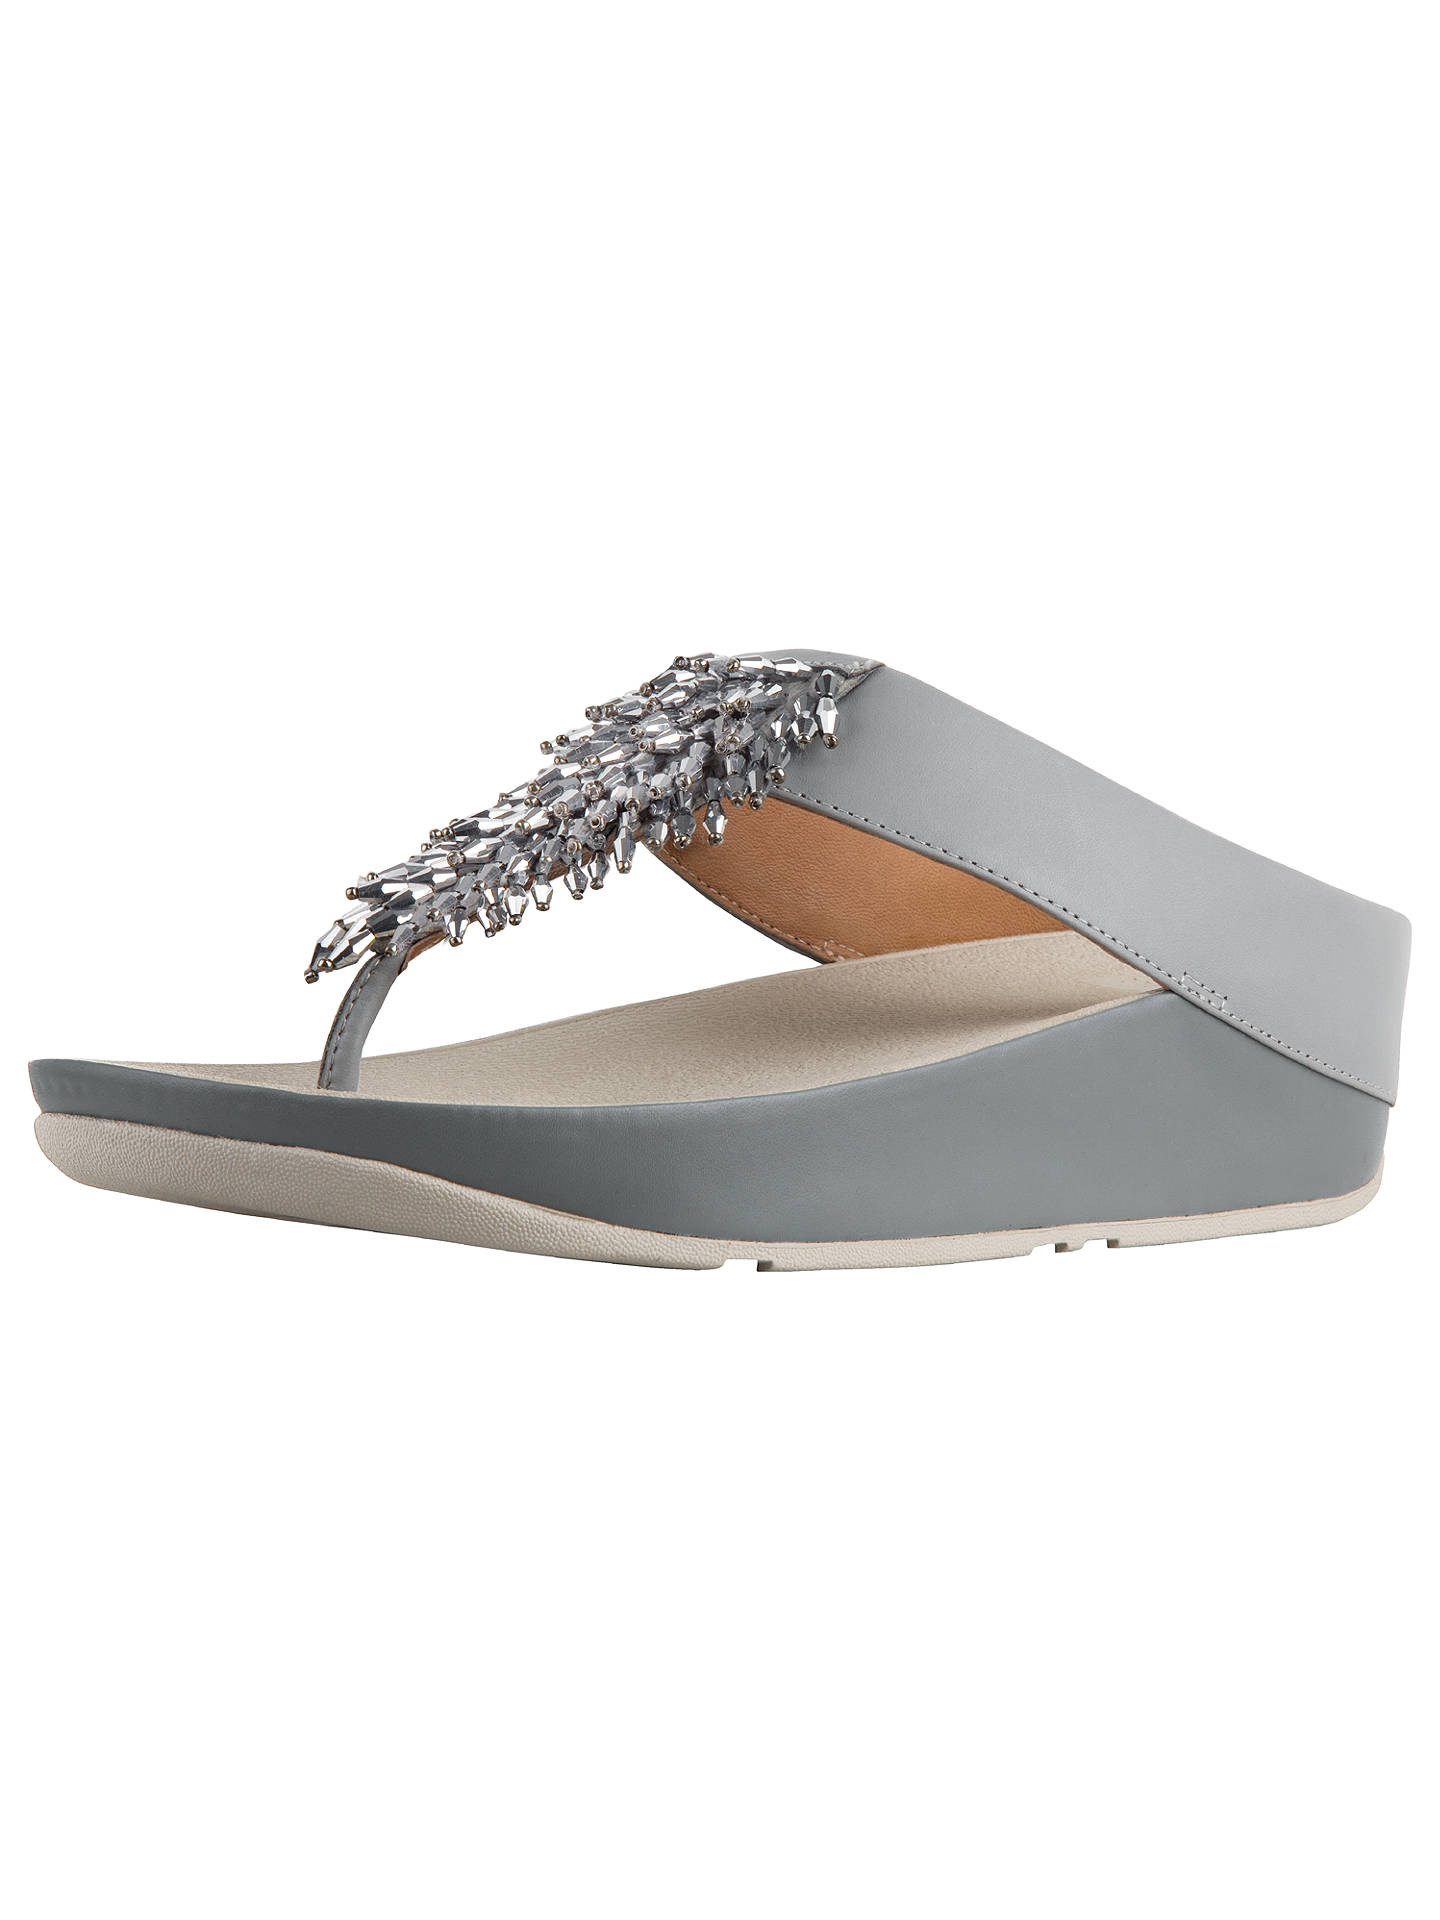 1f20a35734 Buy FitFlop Rumba Embellished Toe Post Sandals